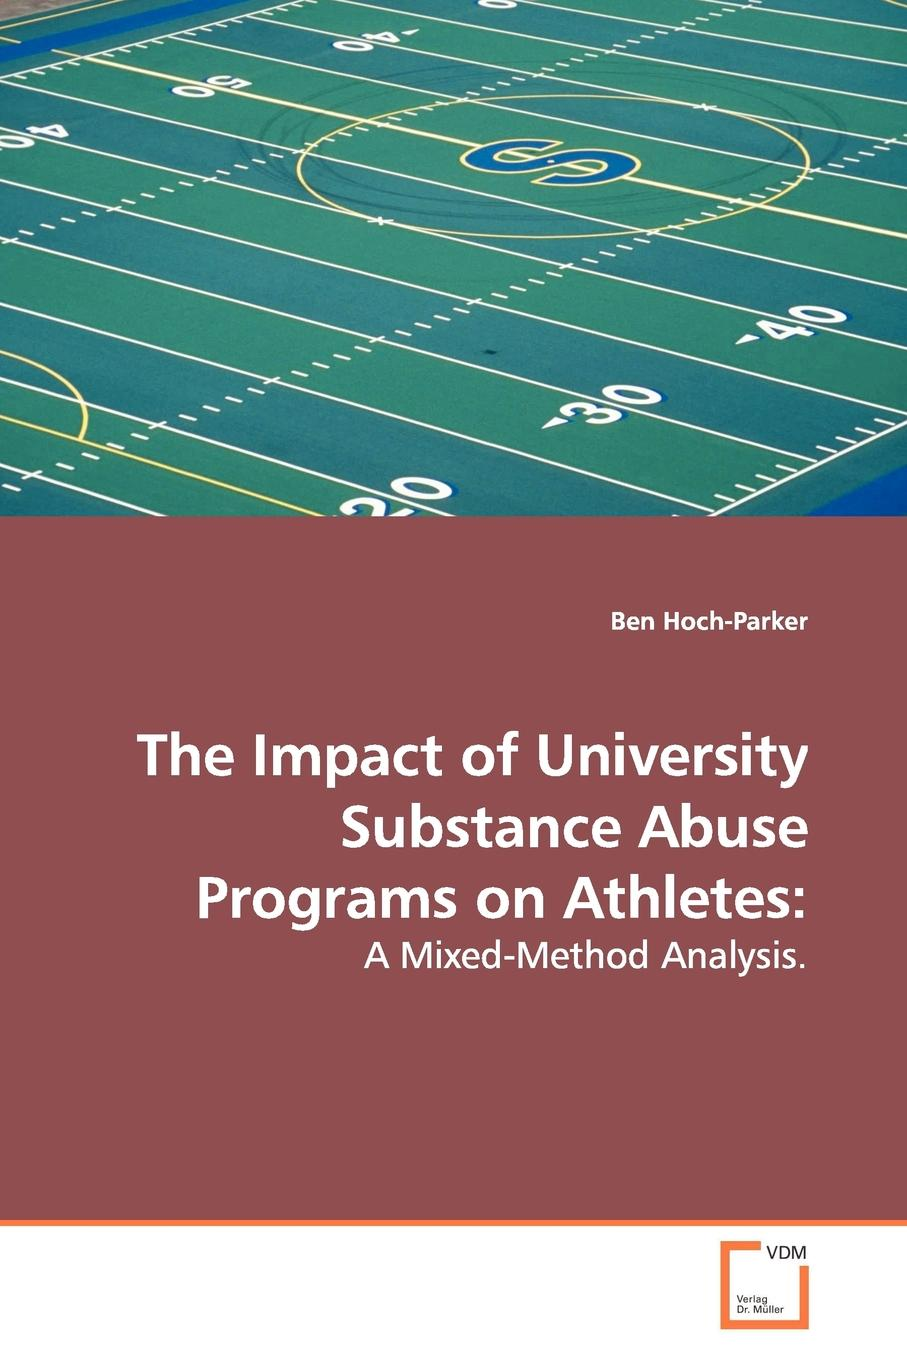 Ben Hoch-Parker The Impact of University Substance Abuse Programs on Athletes maeve wallace irish students views on school substance abuse prevention programme